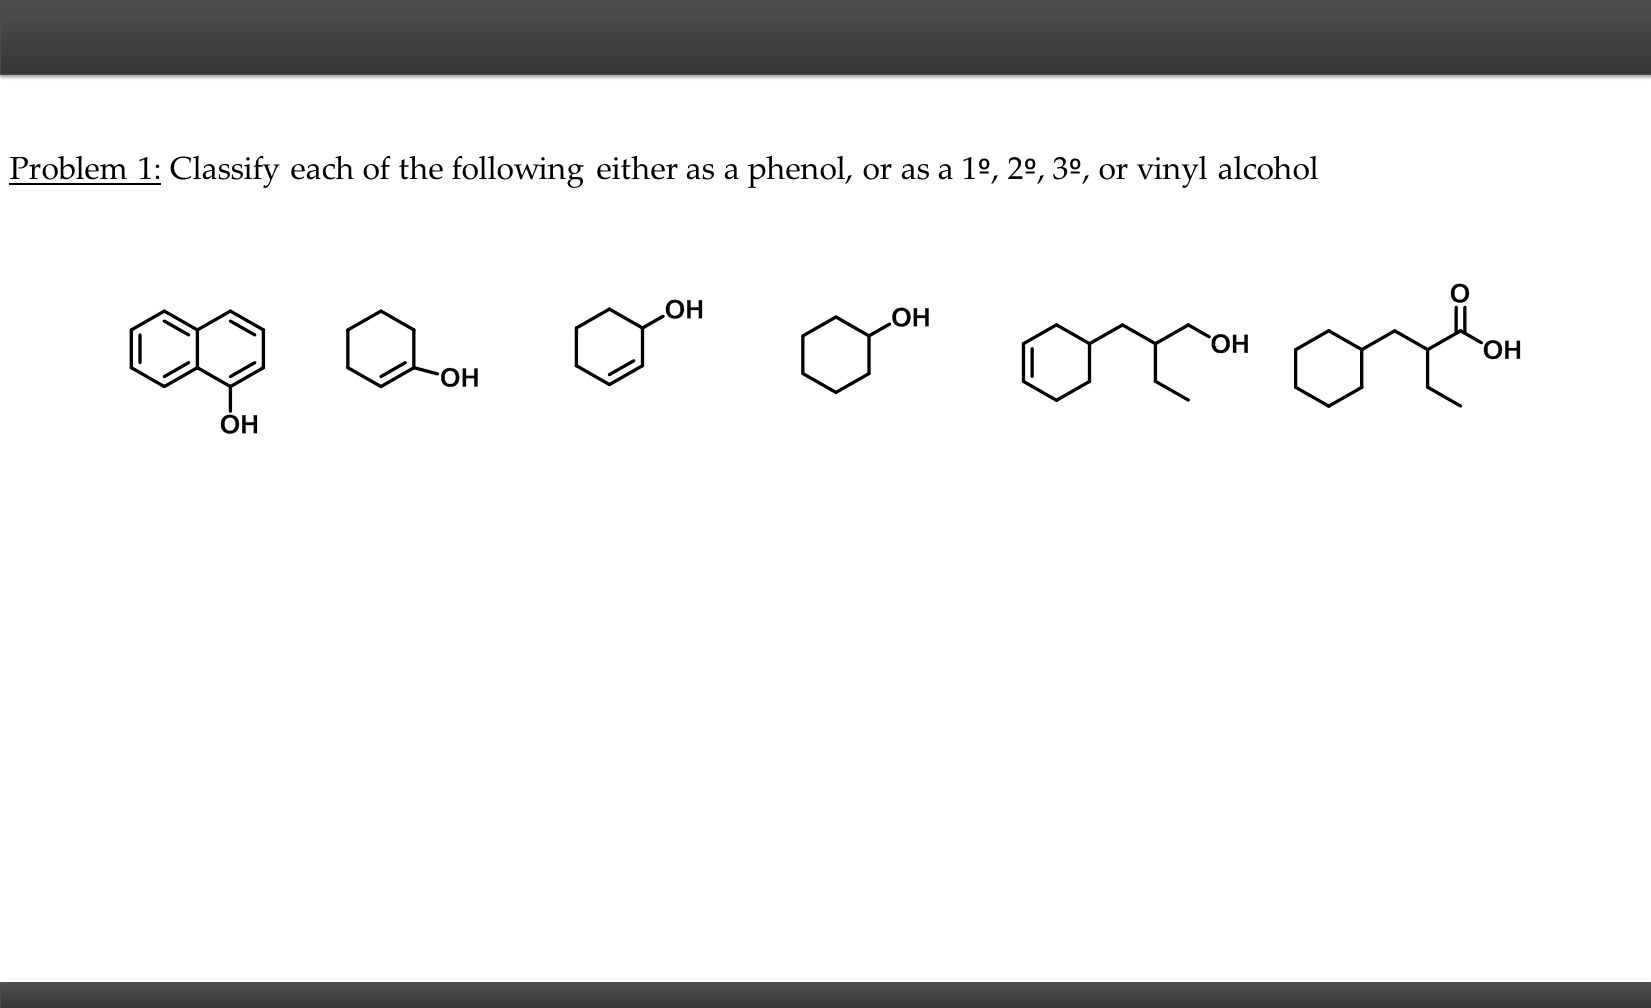 Problem 1: Classify each of the following either as a phenol, or as a 1 º, 2 º, 3 º, or vinyl alcohol